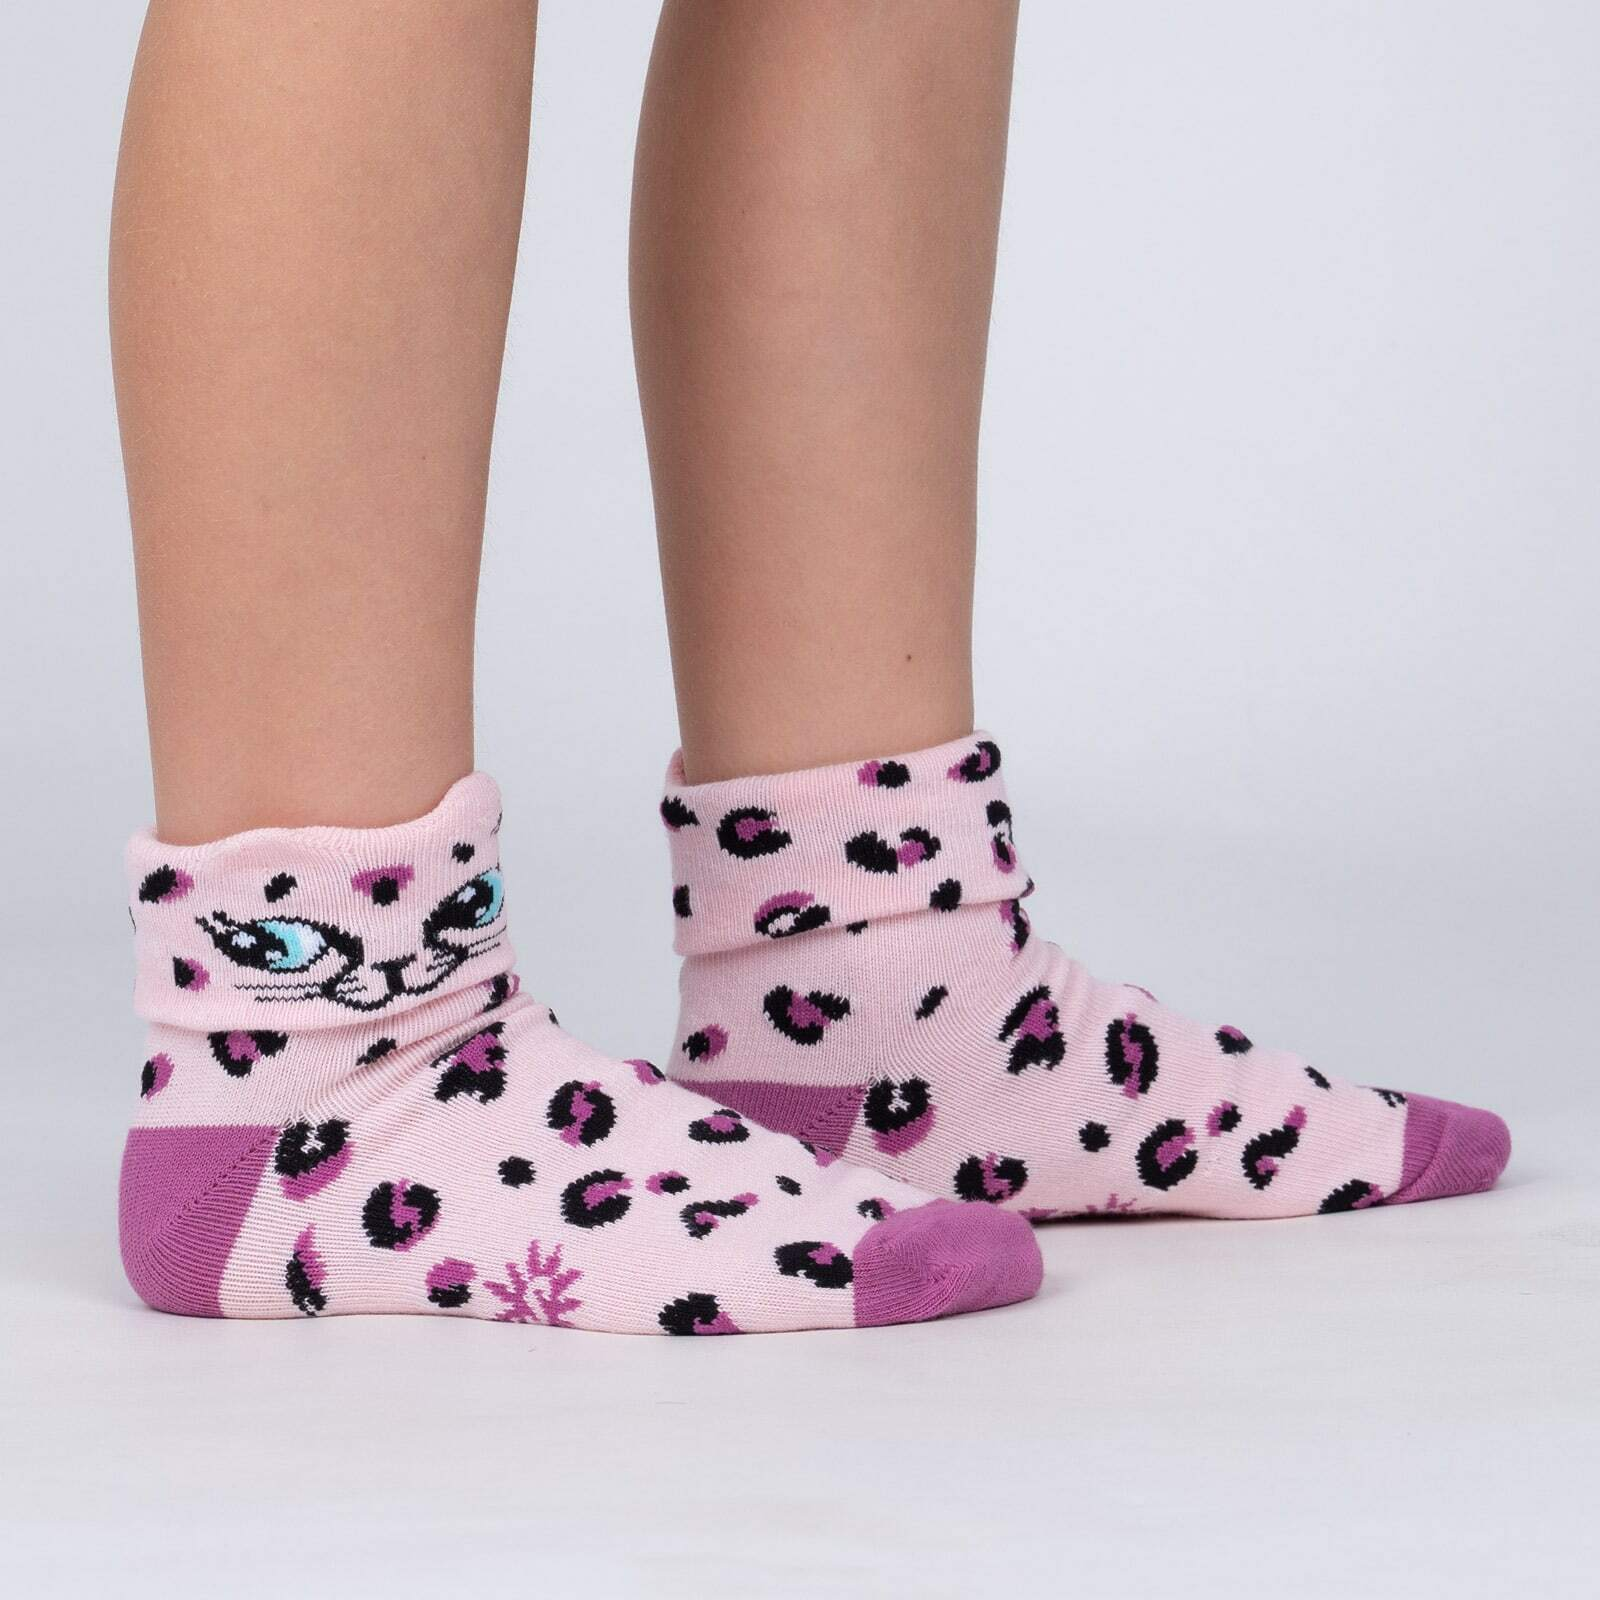 model side view of Check Meowt - Pink Leopard Turn Cuff Socks - Youth